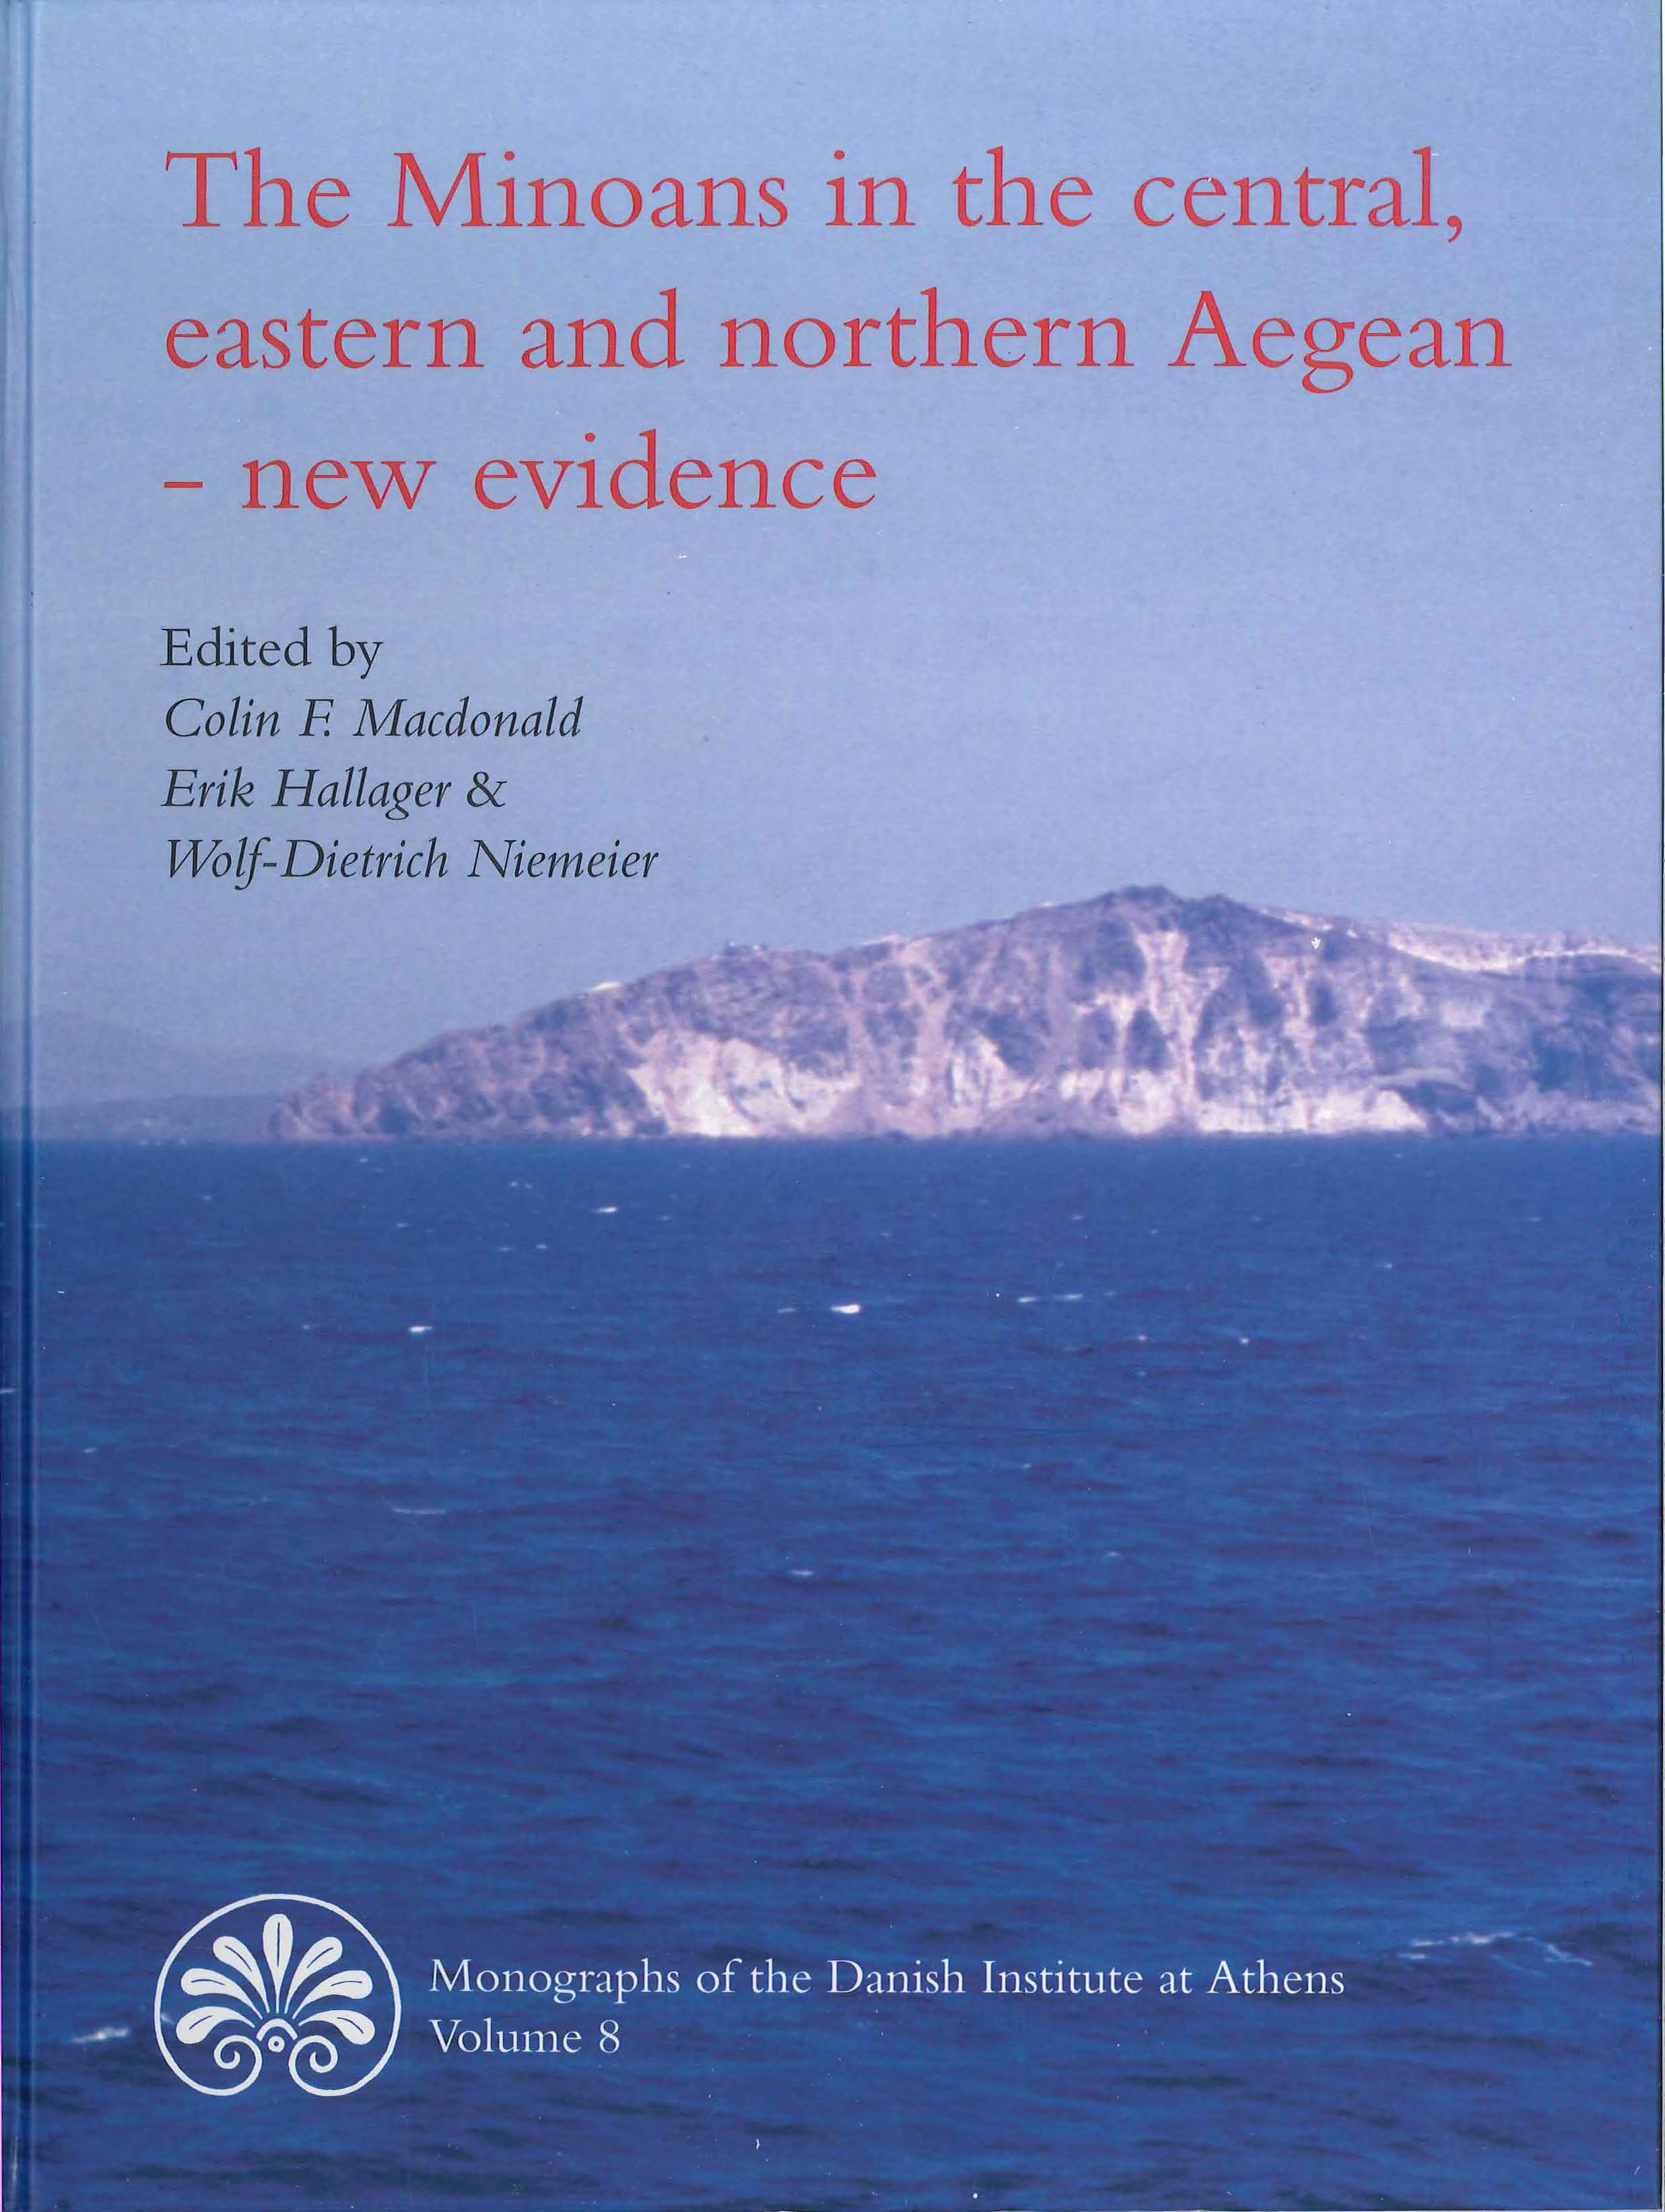 View Vol. 8 (2009): The Minoans in the central, eastern and northern Aegean - new evidence